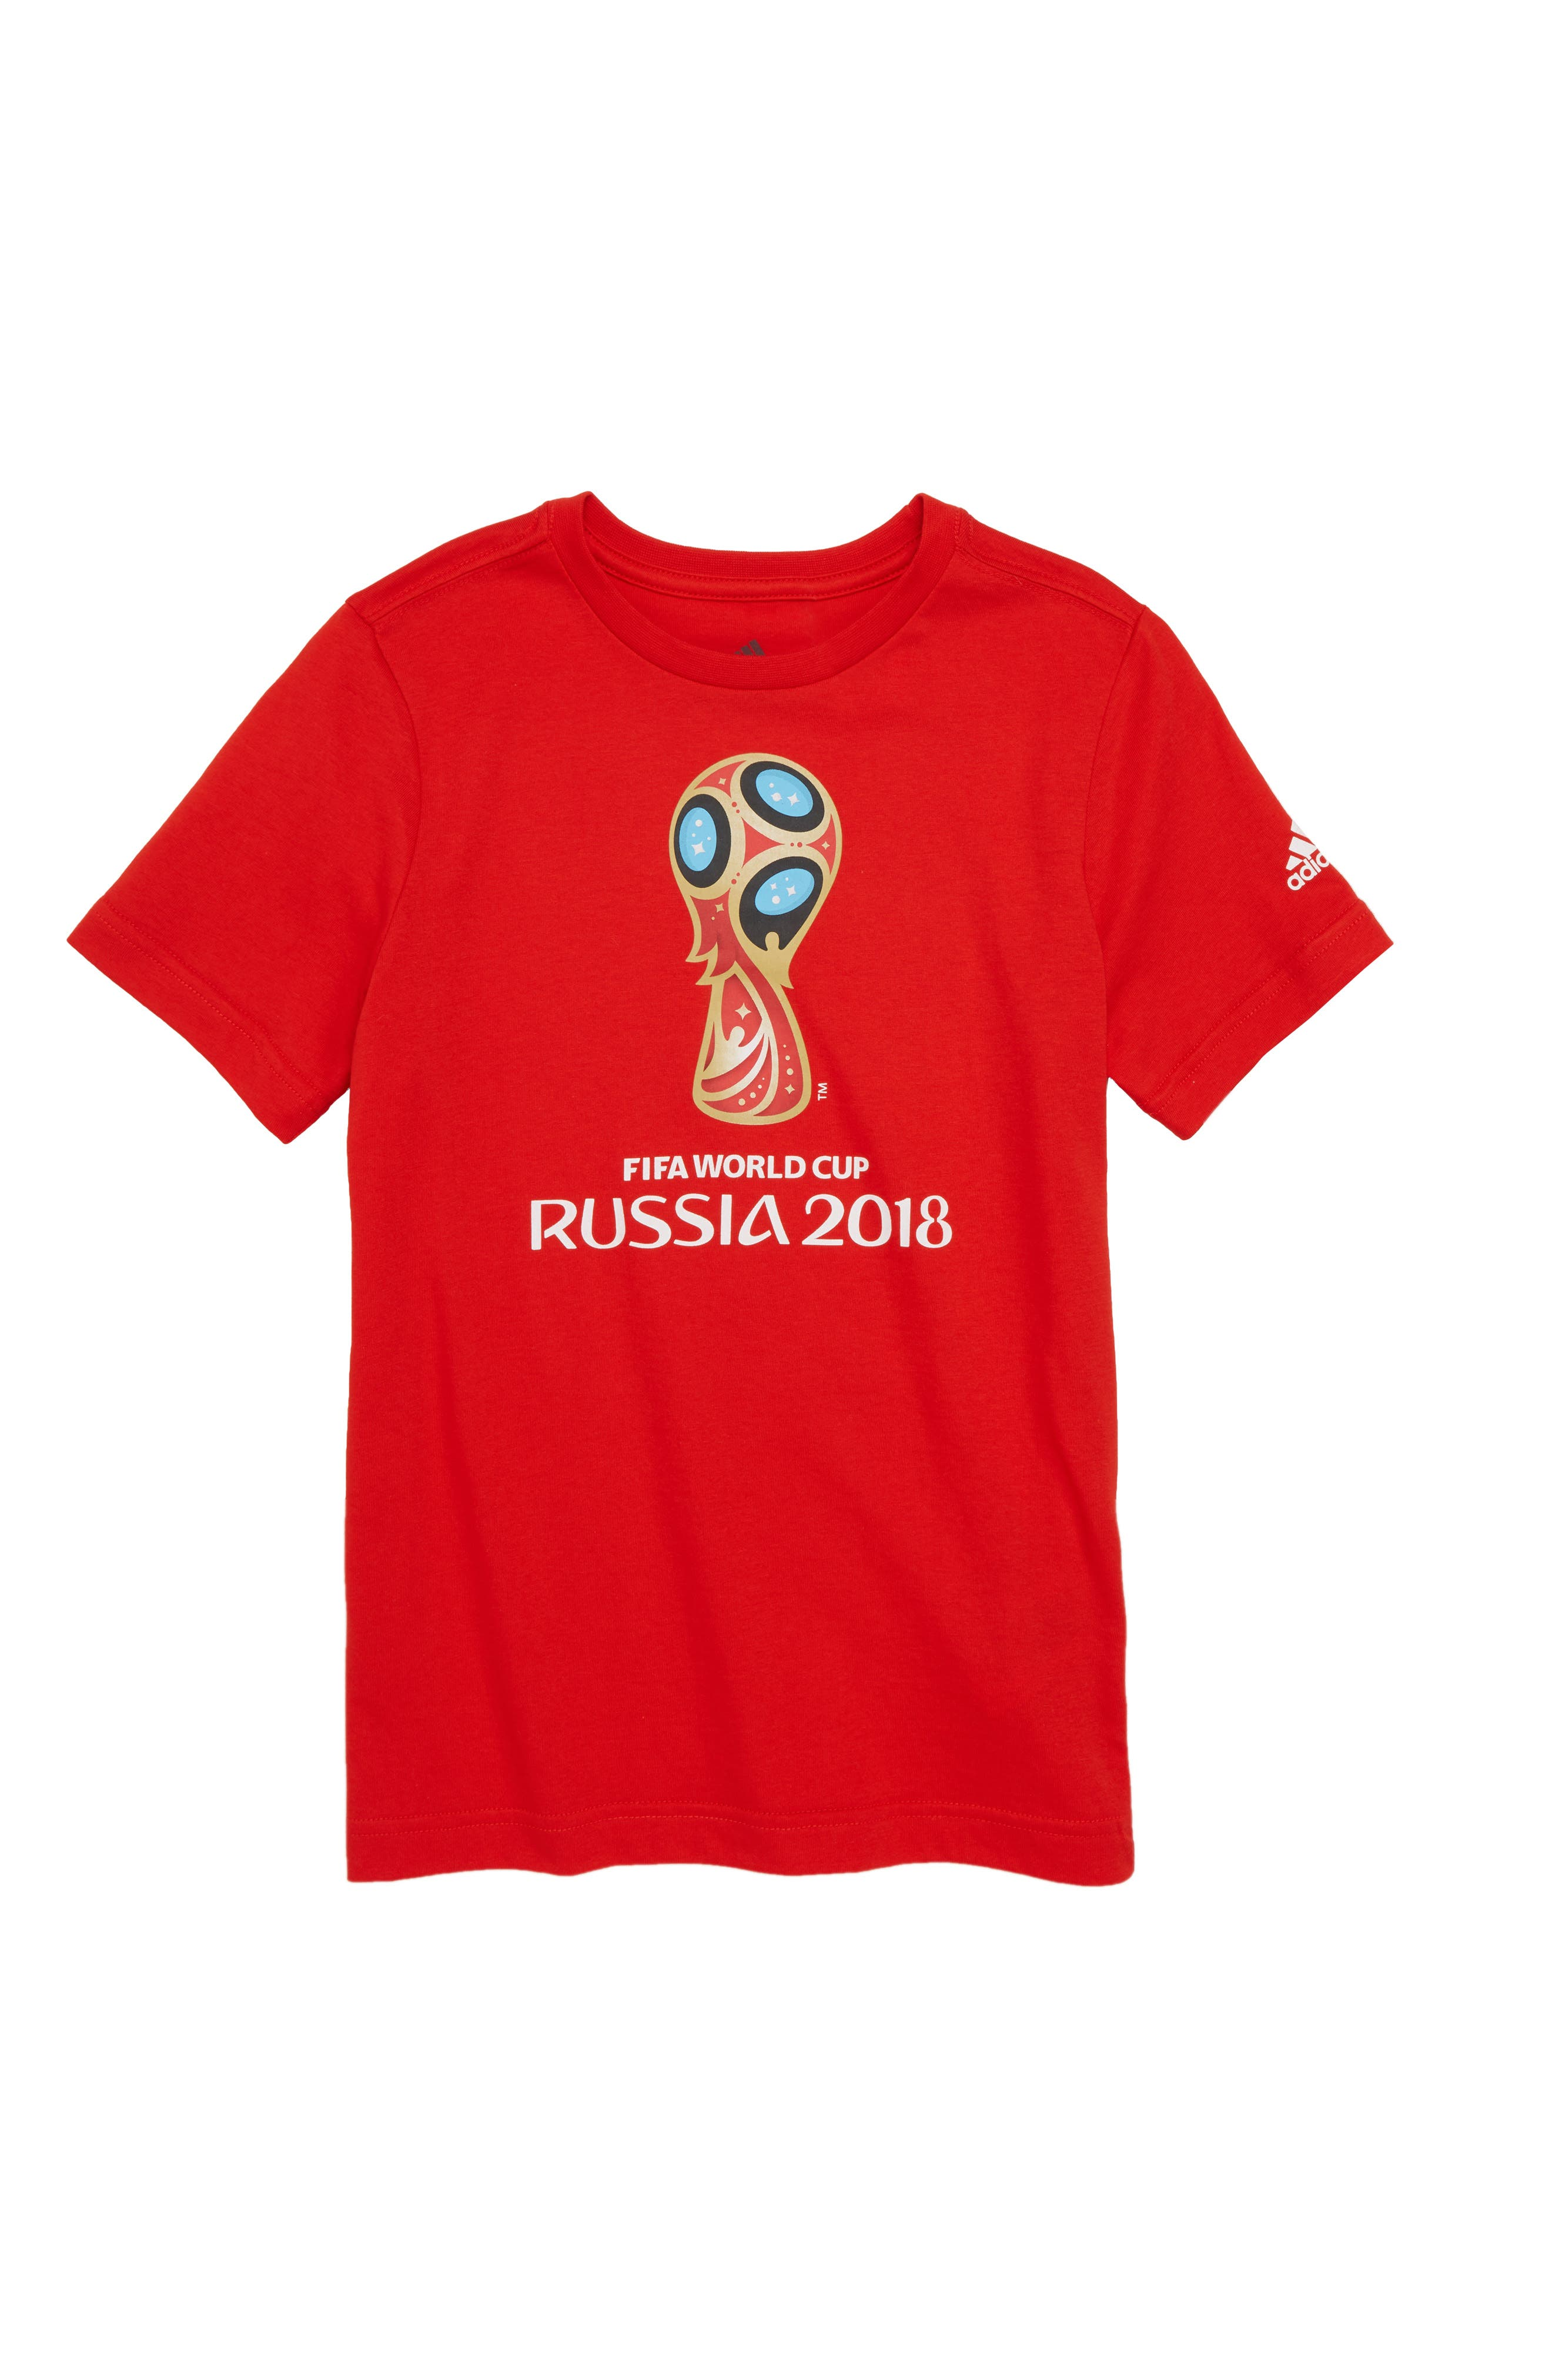 2018 FIFA World Cup Russia Soccer T-Shirt,                         Main,                         color, Red